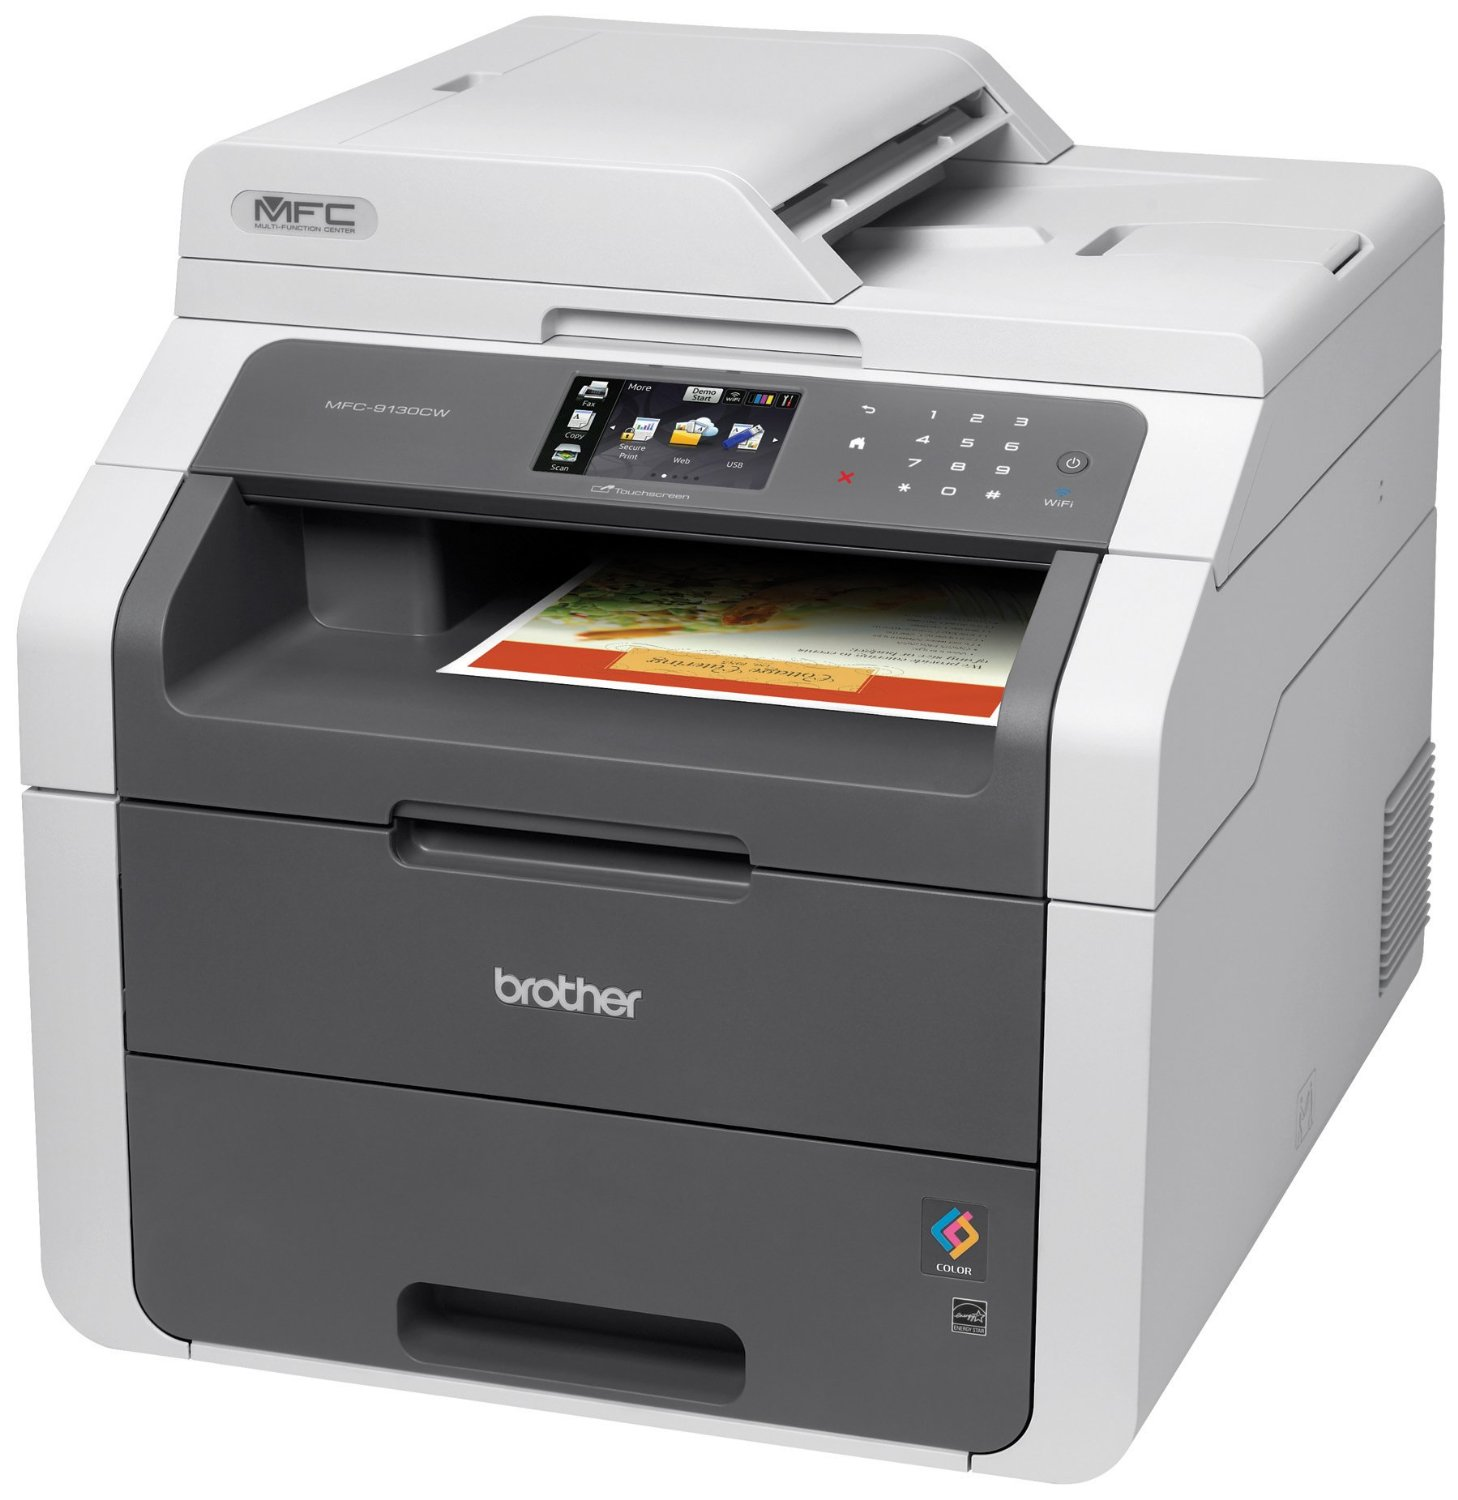 windows fax and scan pdf